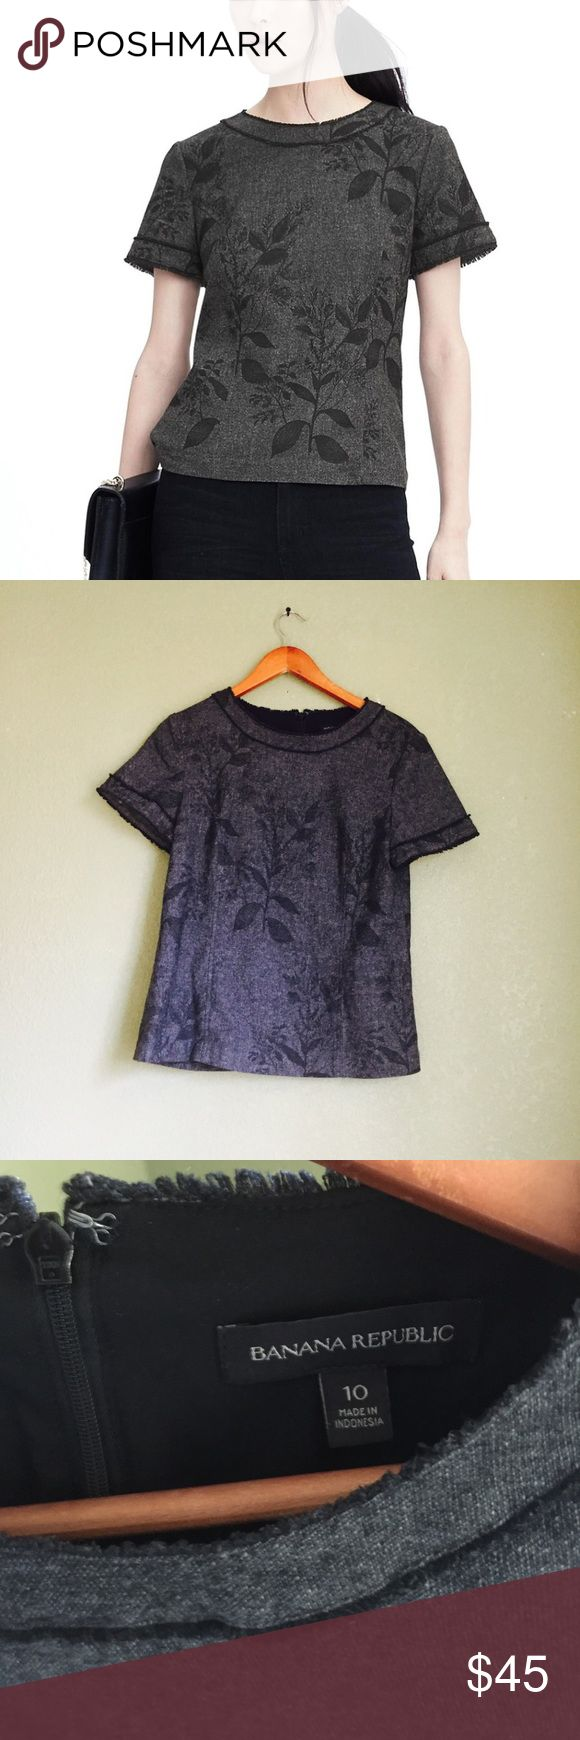 Banana republic Marcy frayed floral top size 10 Very fashionable and chic size 10 banana republic top All over floral print Back half zip Frayed ends Banana Republic Tops Blouses